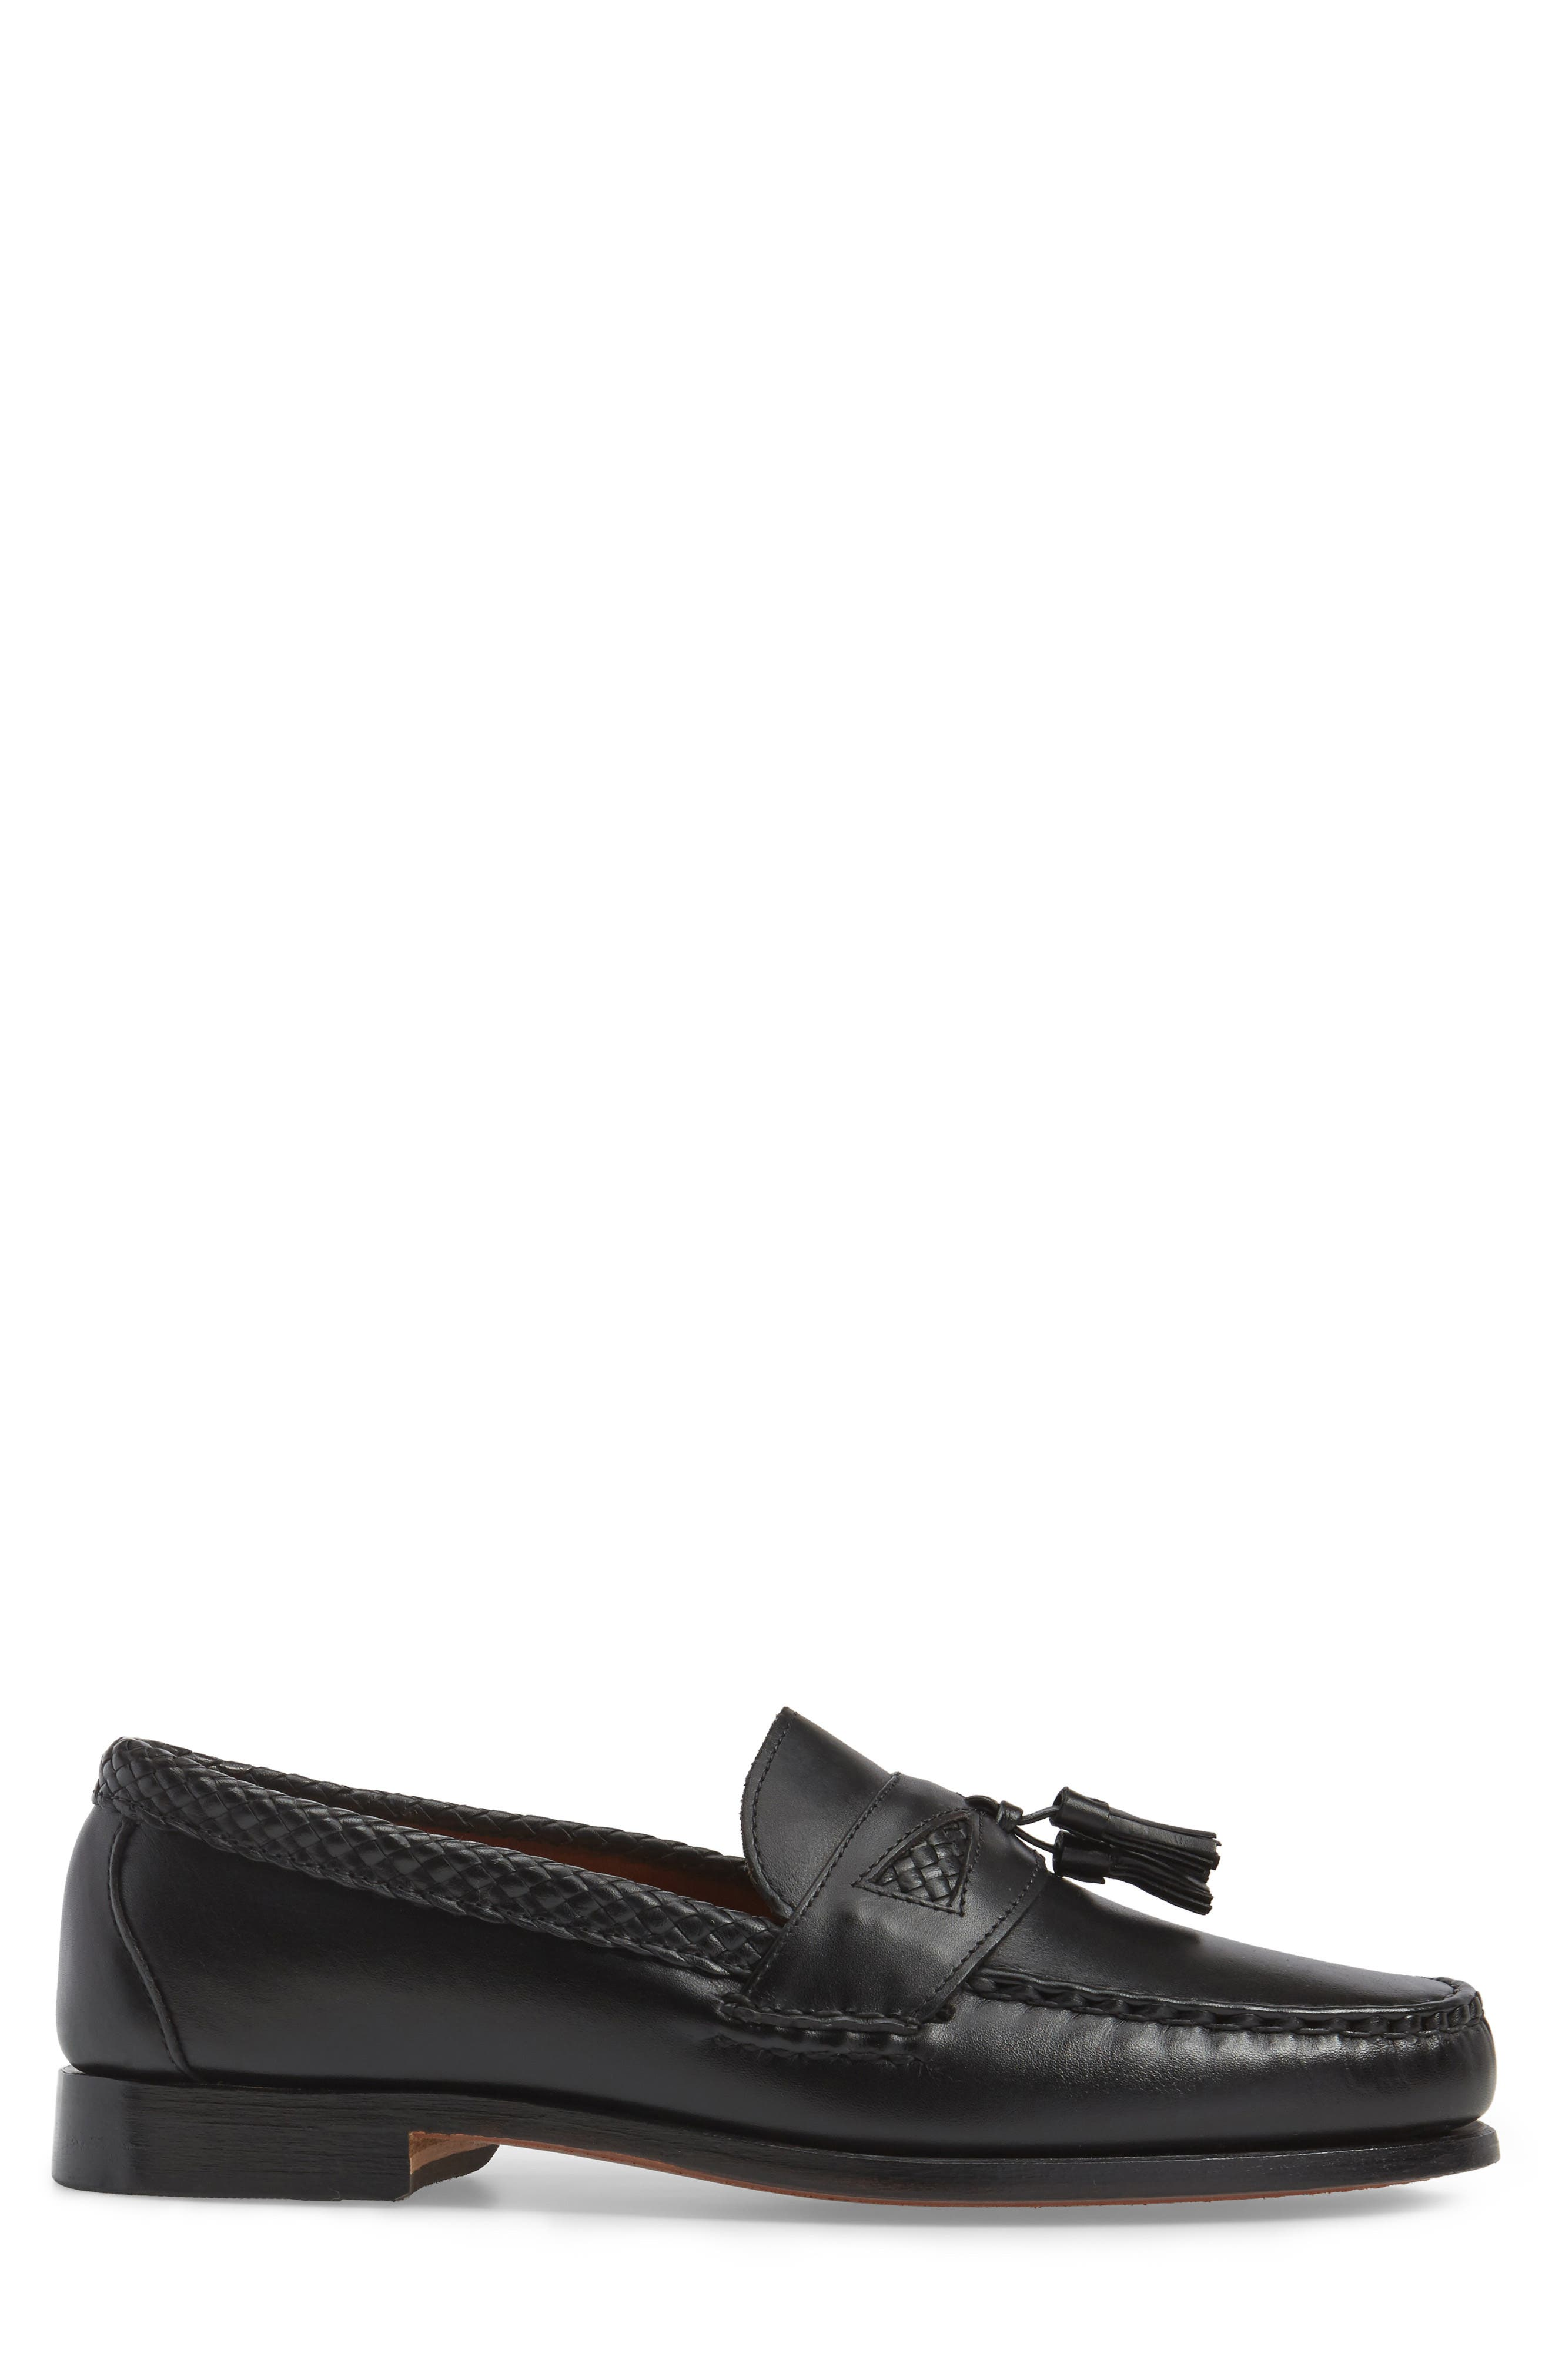 'Maxfield' Loafer,                             Alternate thumbnail 3, color,                             BLACK